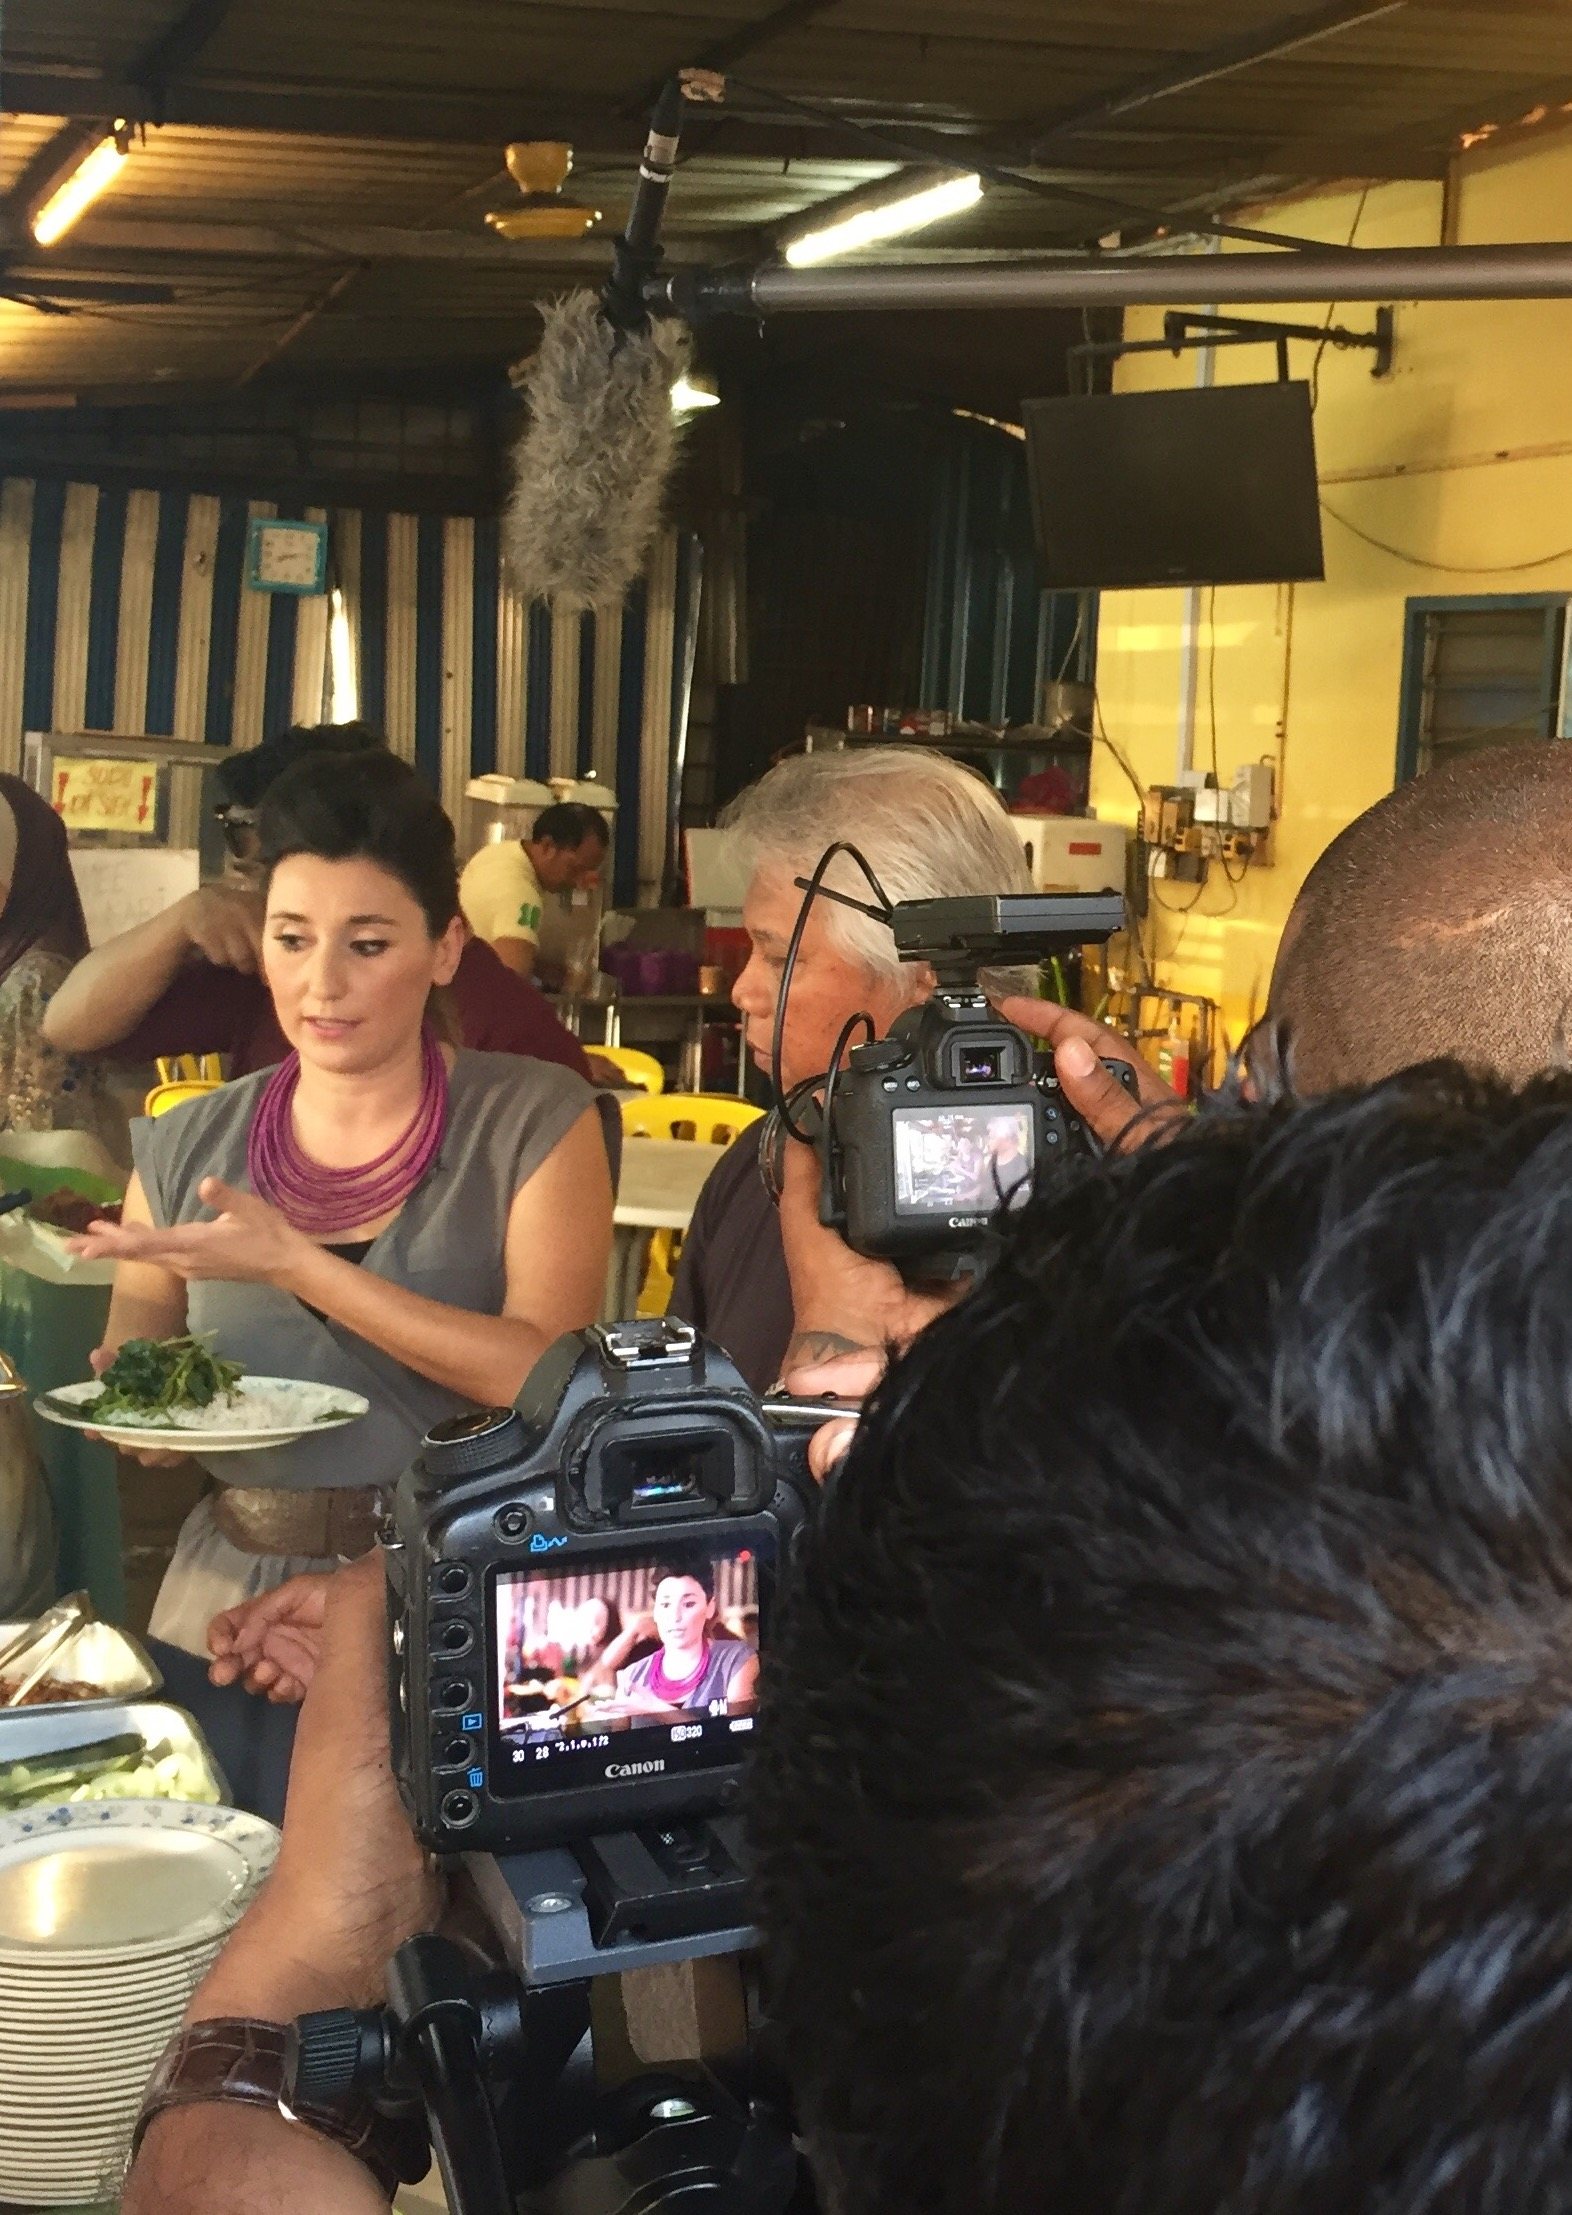 Behind the scenes-Deliciously Diverse -Gina Keatley is an award-winning dietitian and television host. Deliciously Diverse is an innovative series highlighting nutrient diversity through culinary exploration.